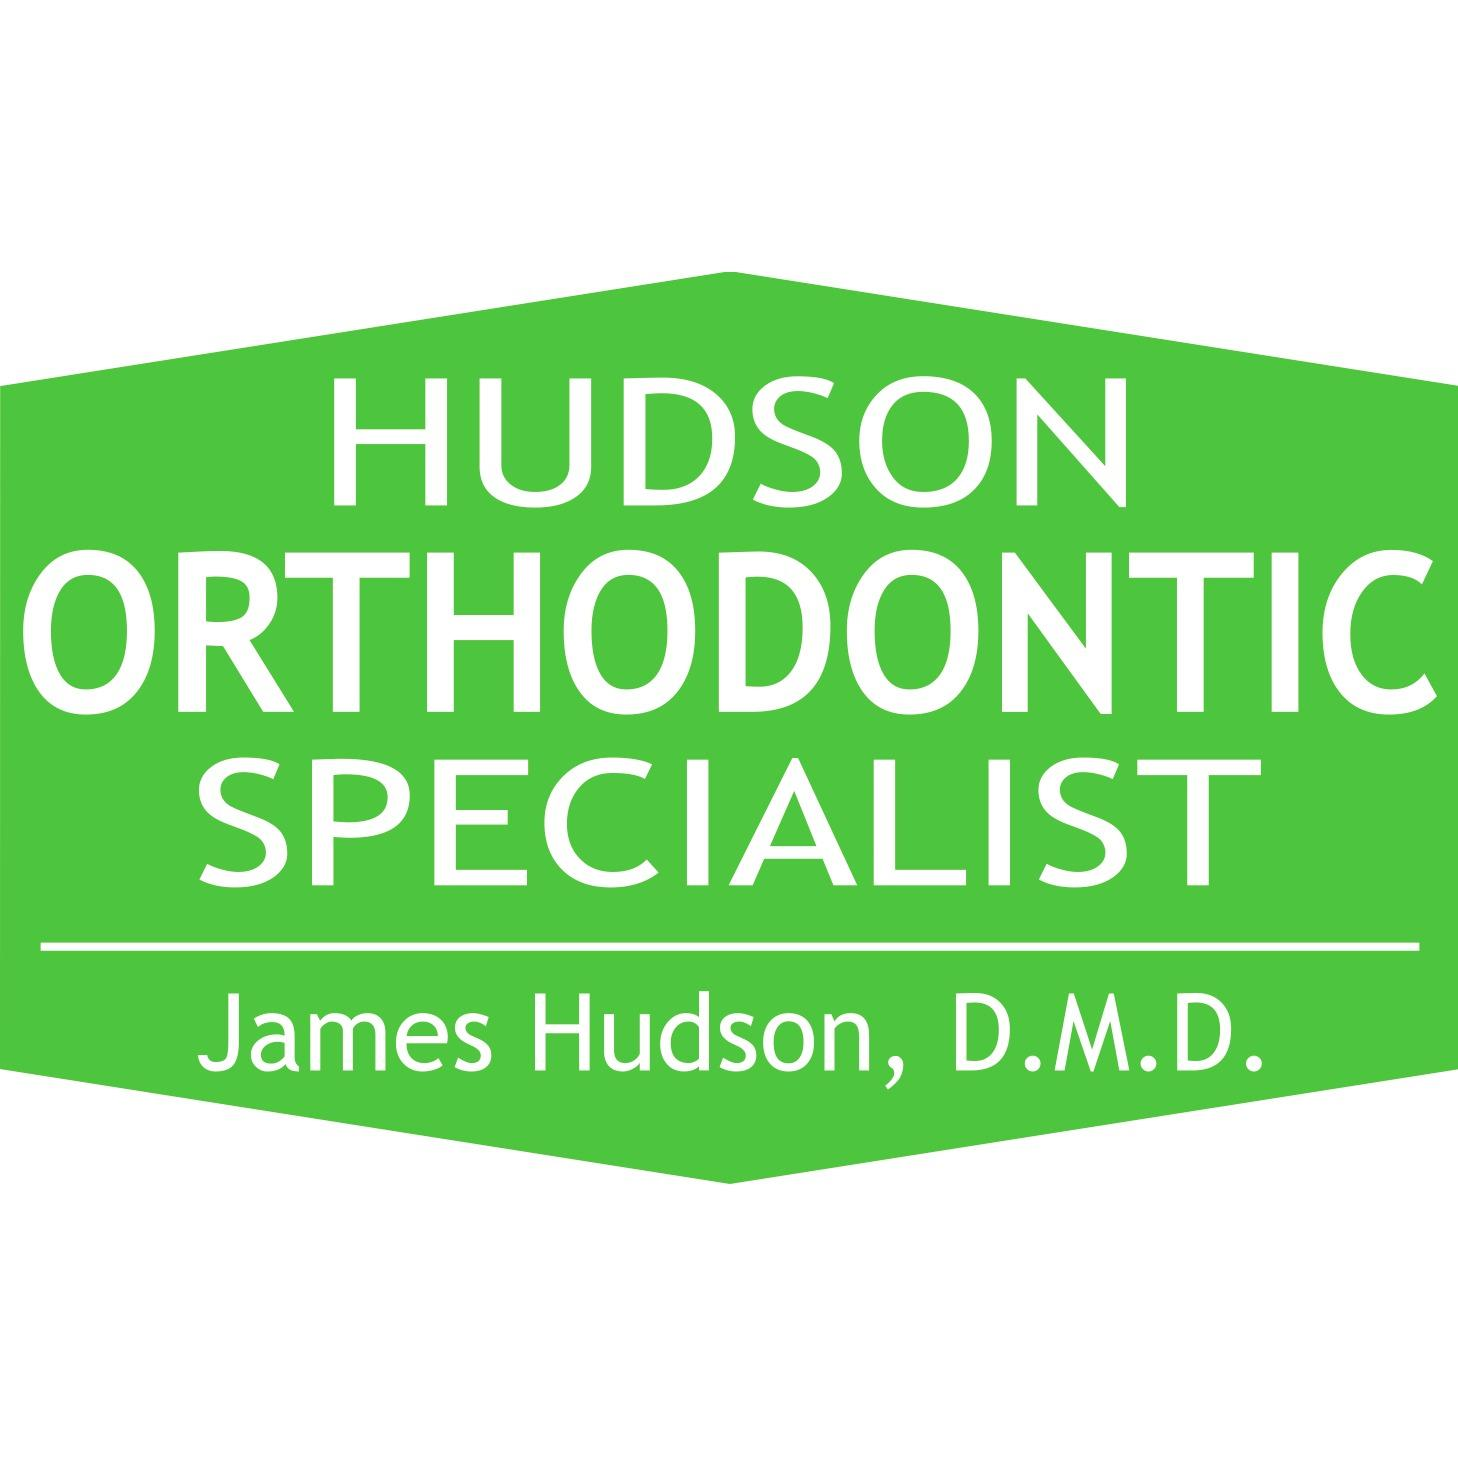 Hudson Orthodontic Specialist: James D. Hudson D.M.D. image 4